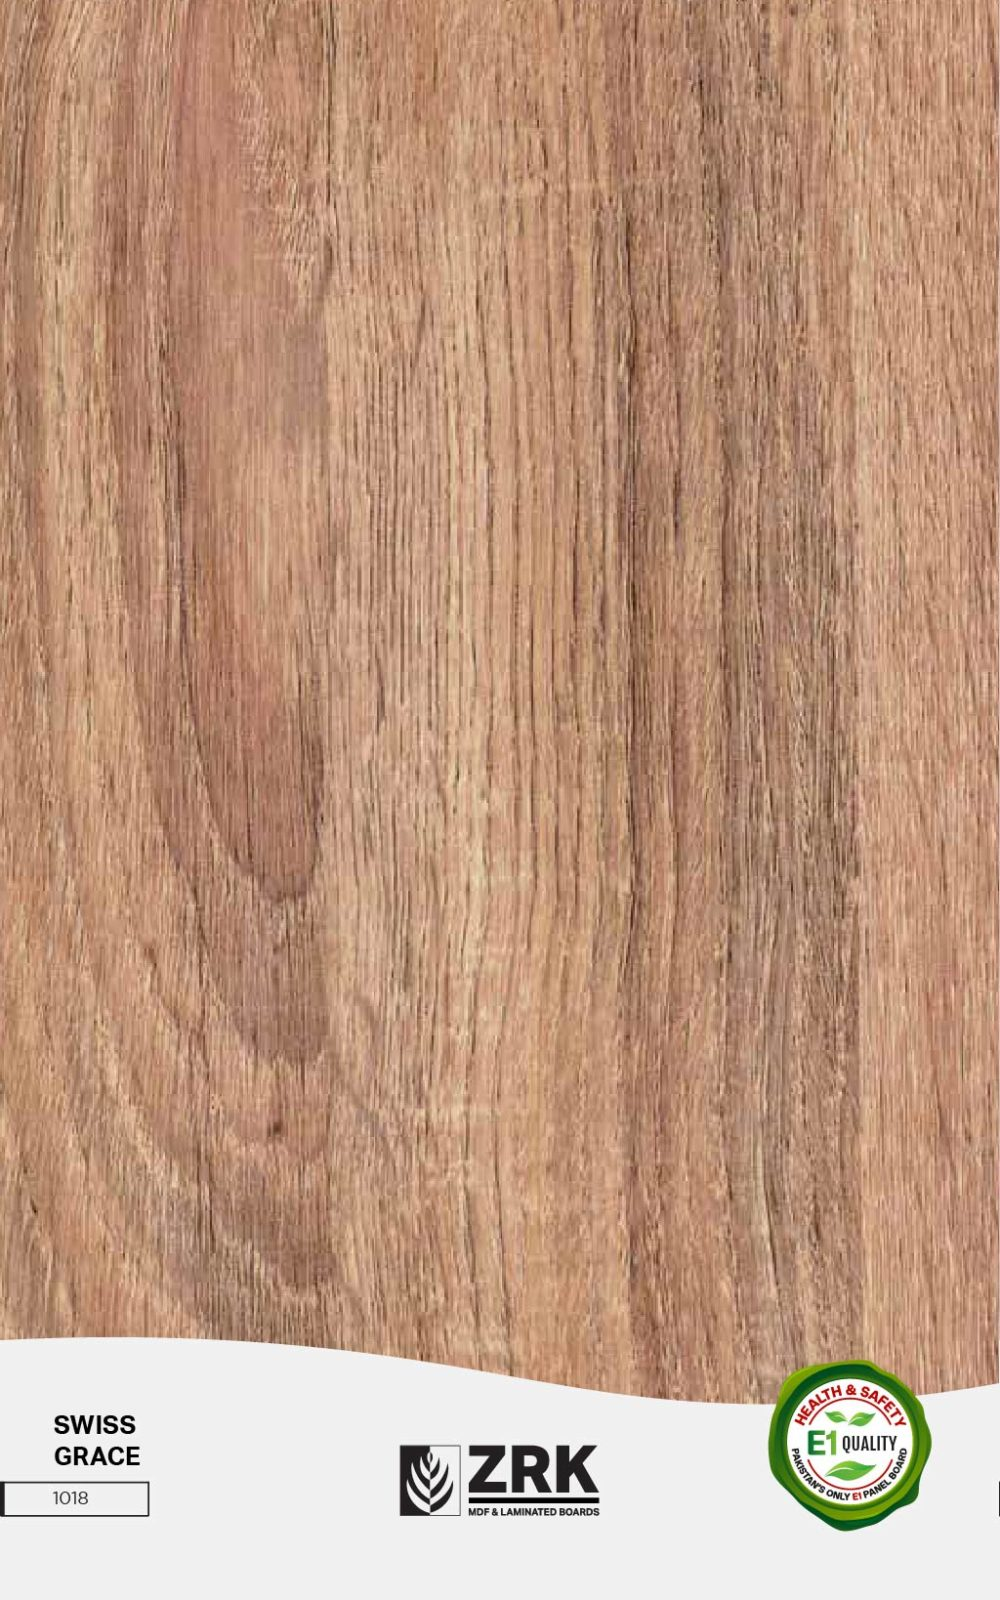 Swiss Grace - Wood Grain - 1018